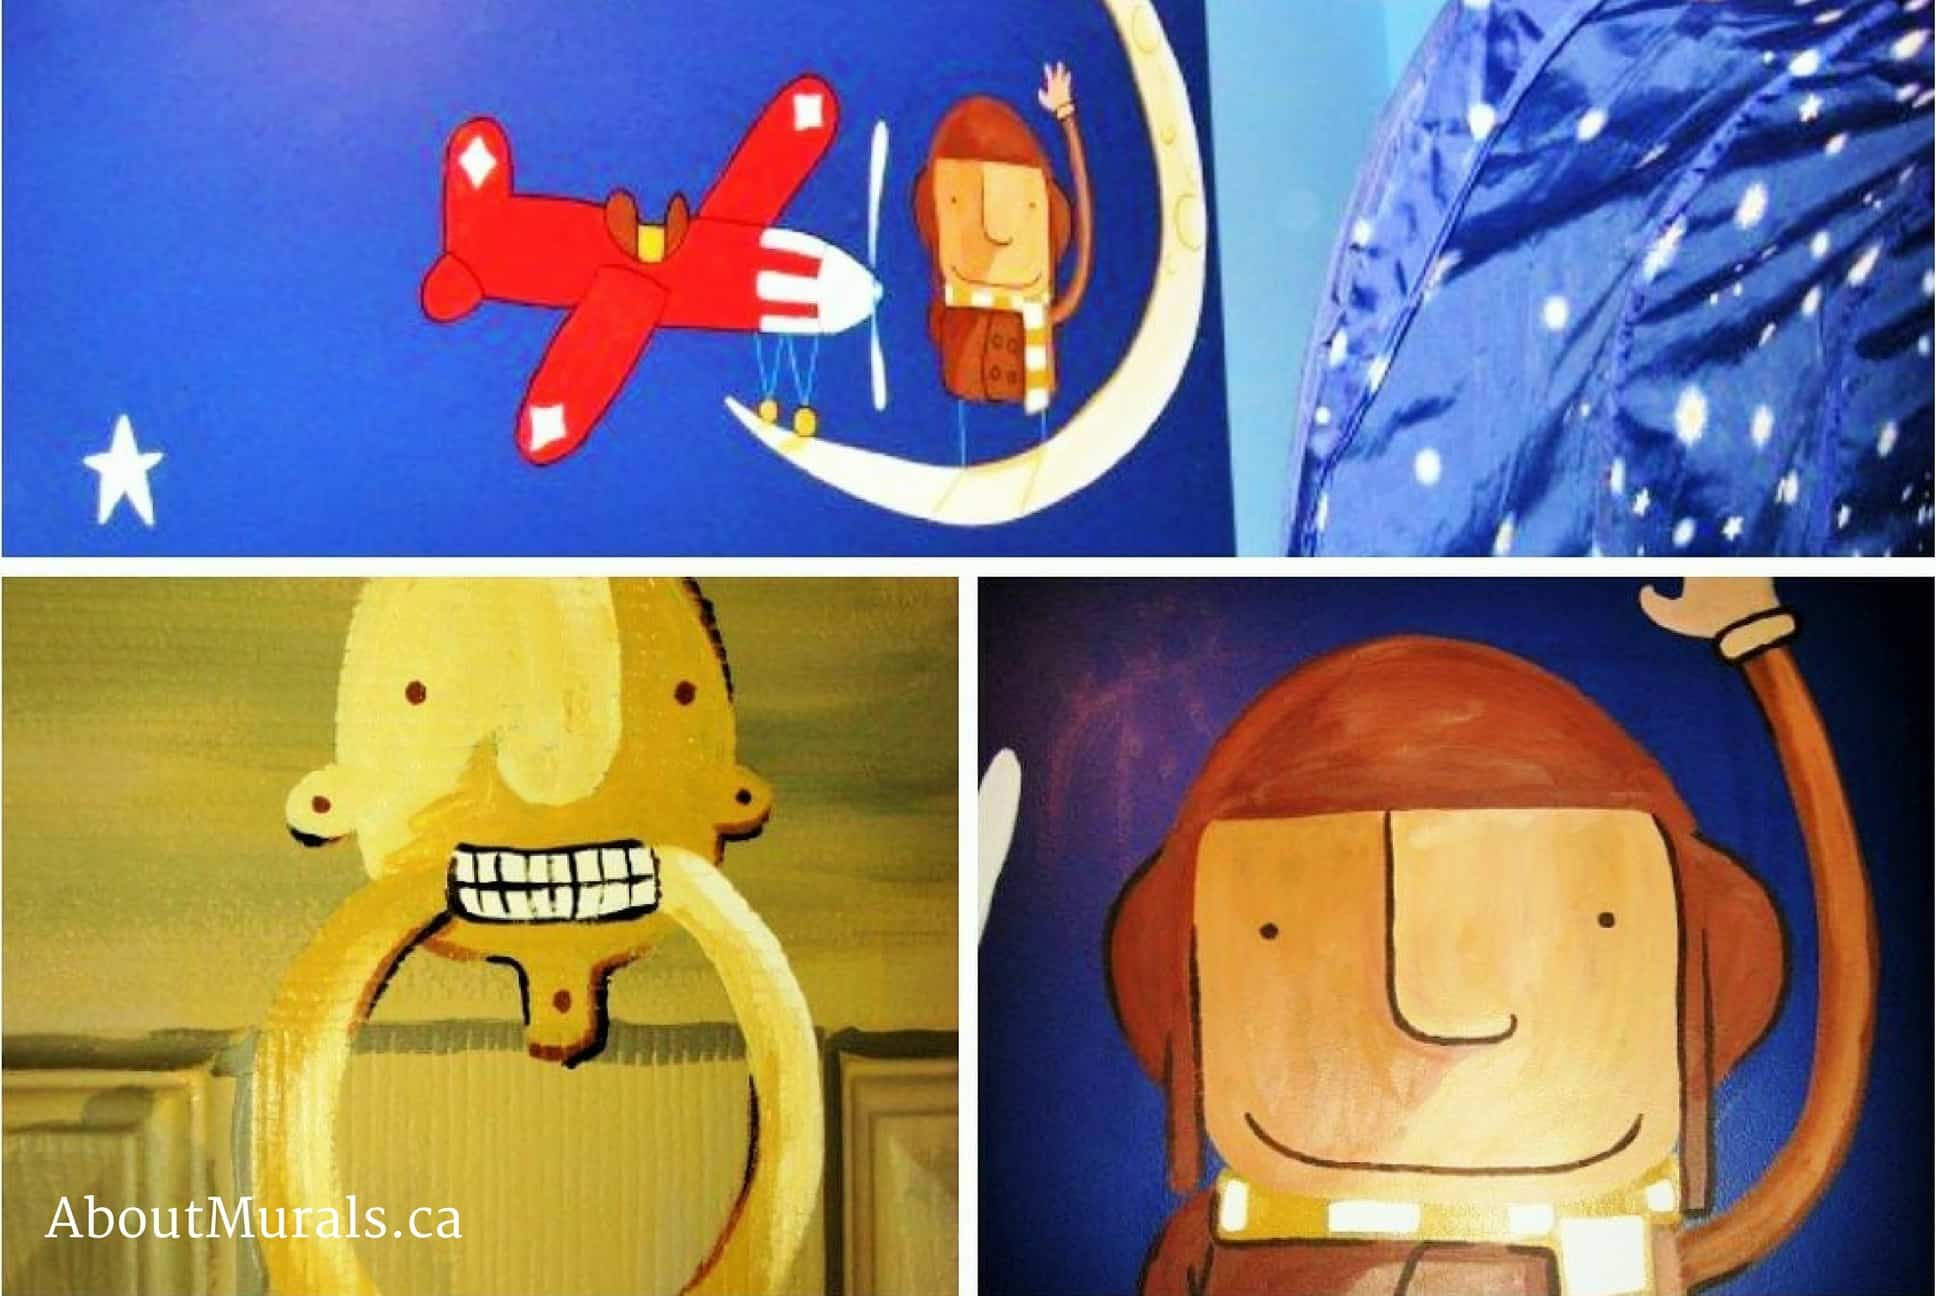 A kids wall mural featuring characters from the book How to Catch a Star